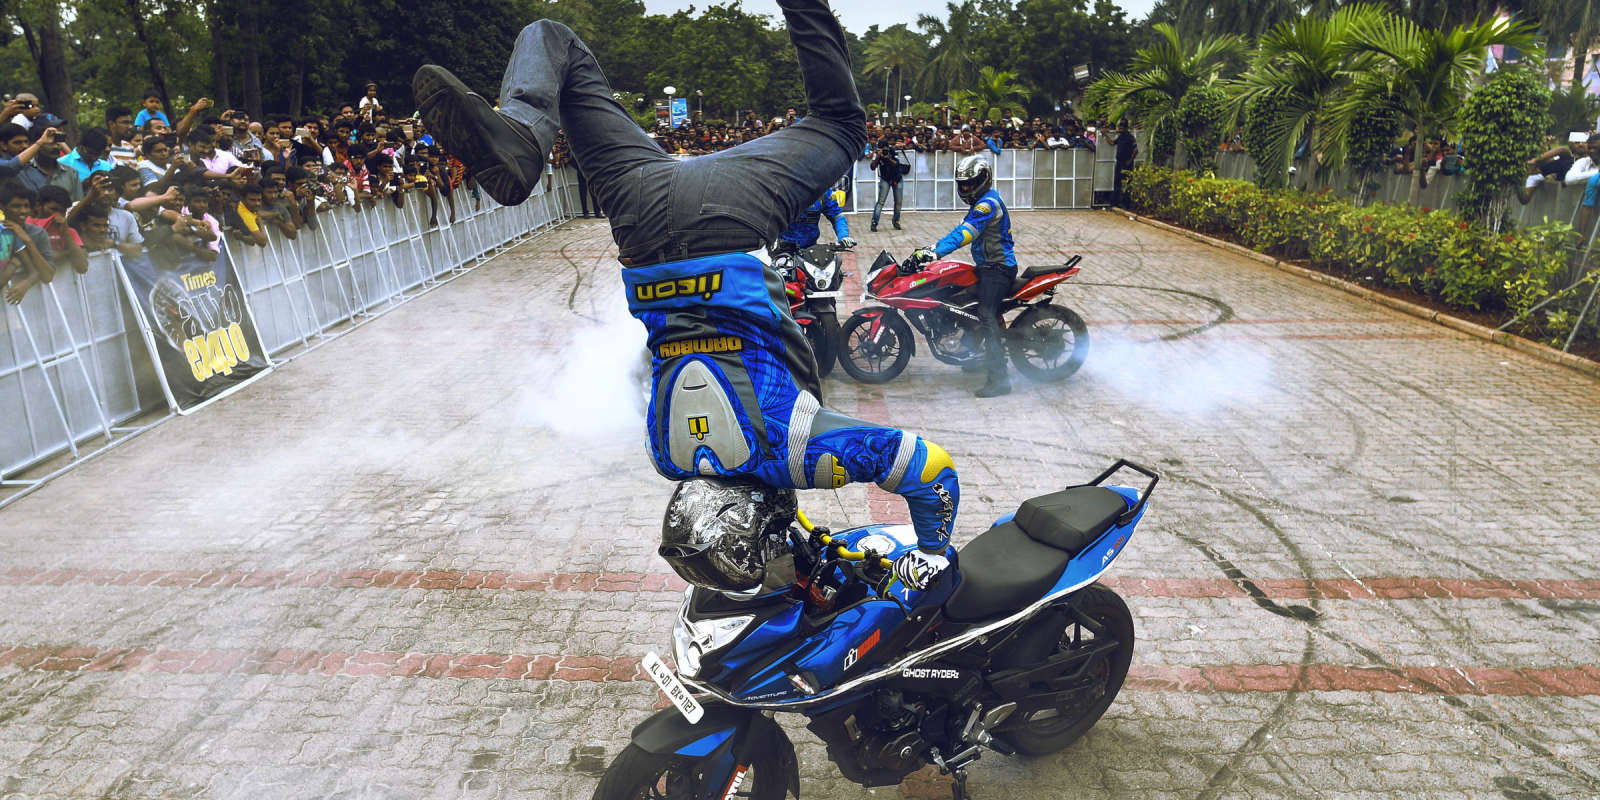 Ghost Ryderz, a professional stunt biking team of about 30 members that's been performing since 2007. Used as ambassadors for India Monster launch